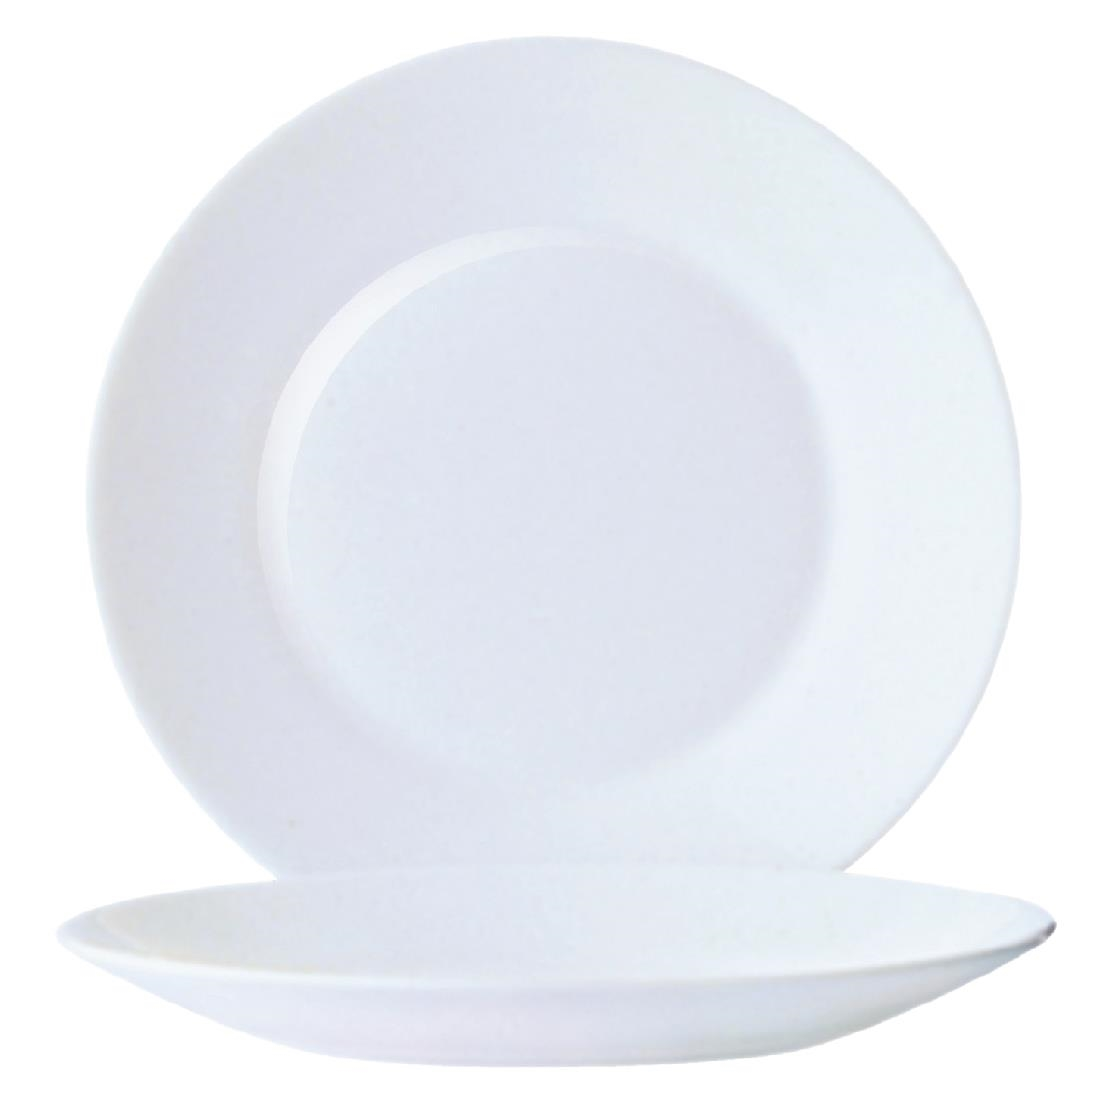 Image of Arcoroc Opal Restaurant Wide Rim Plates 254mm (Pack of 6) Pack of 6